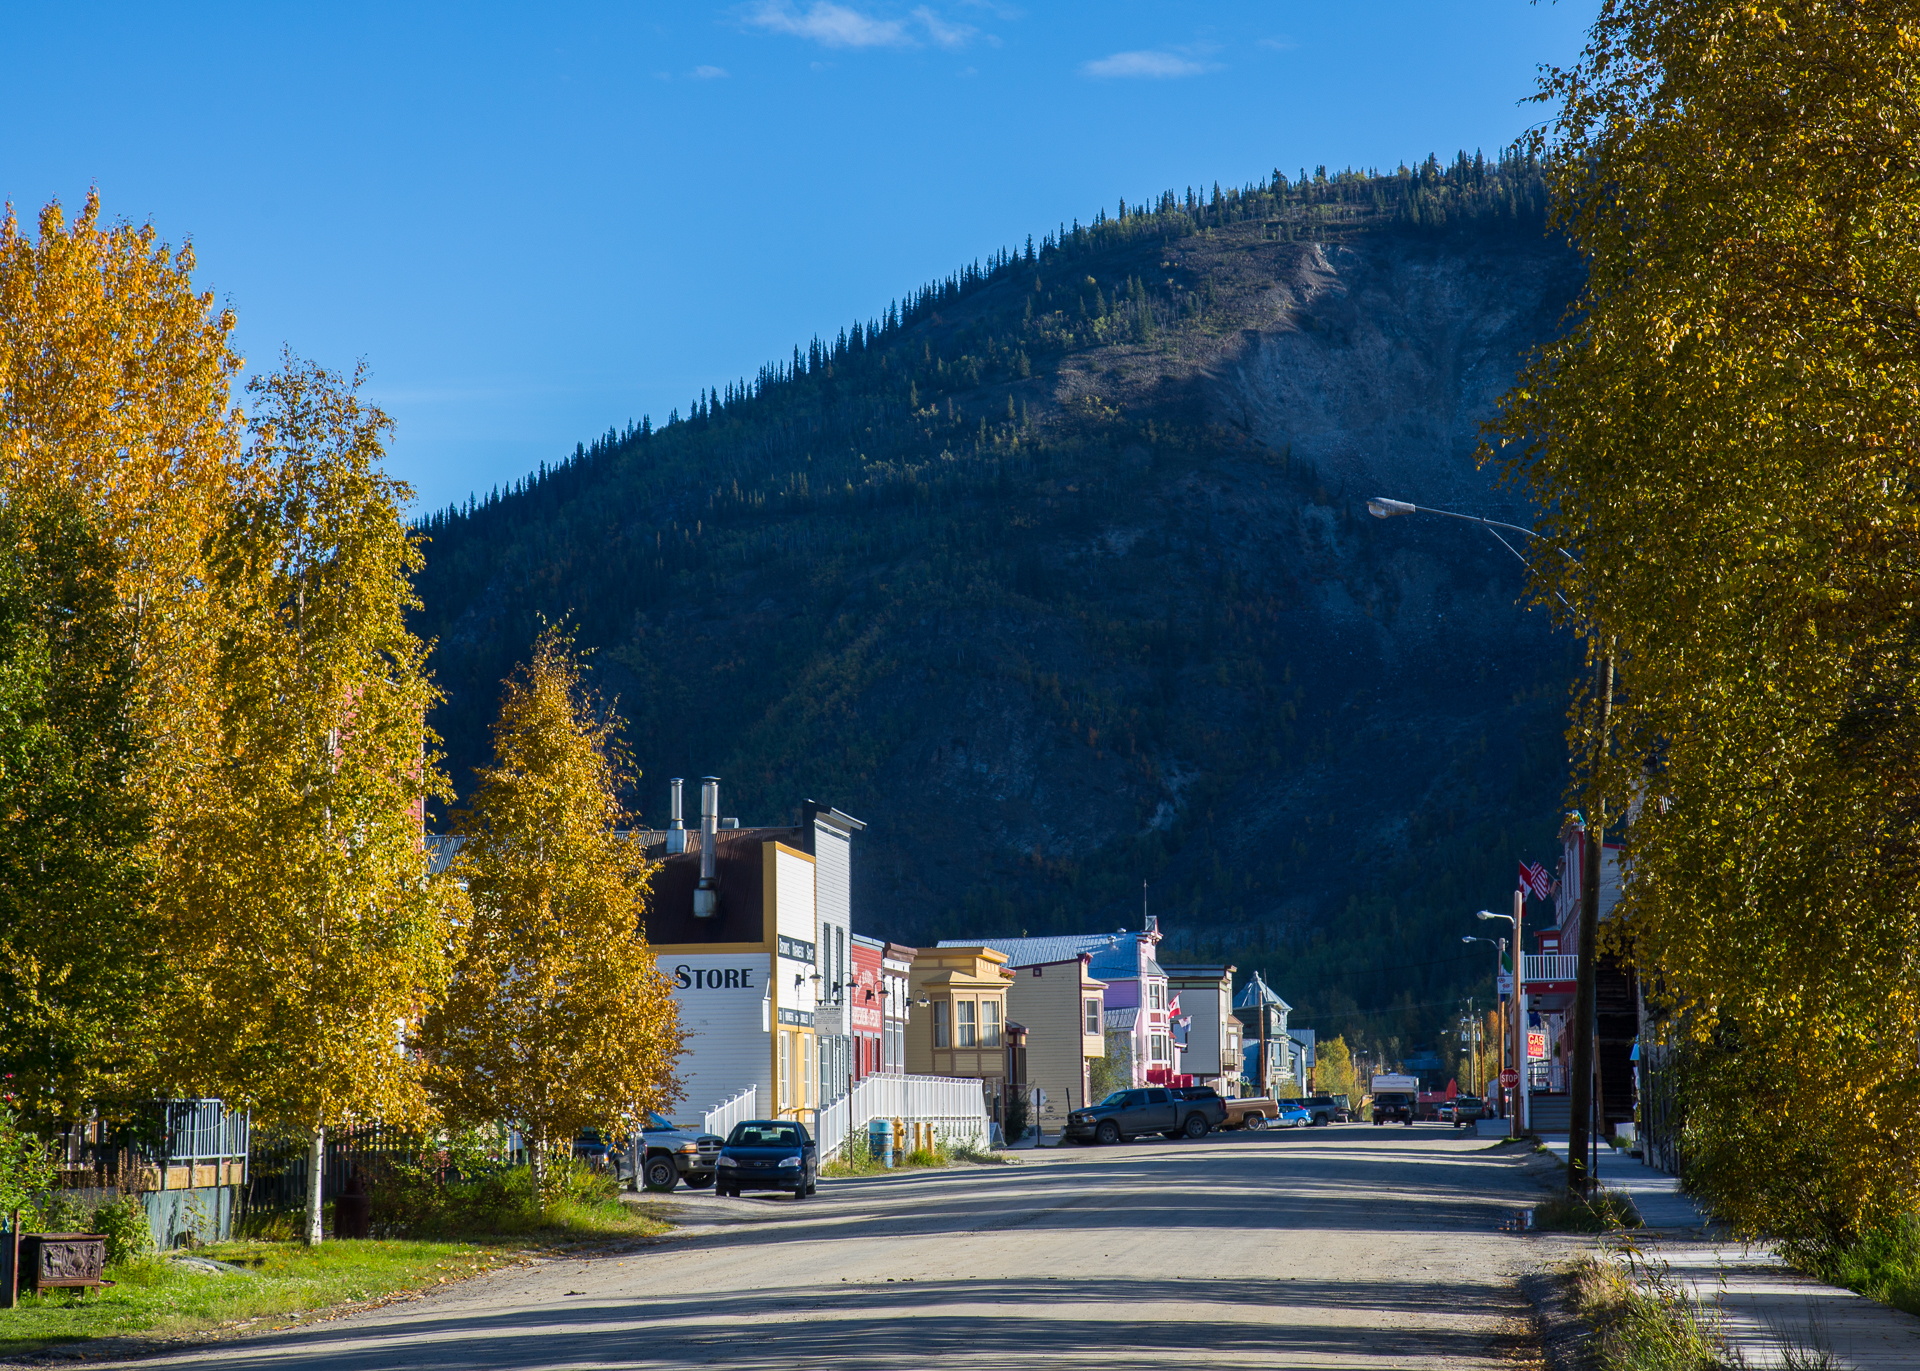 Dawson City is a beautiful place - especially in the nice morning light!